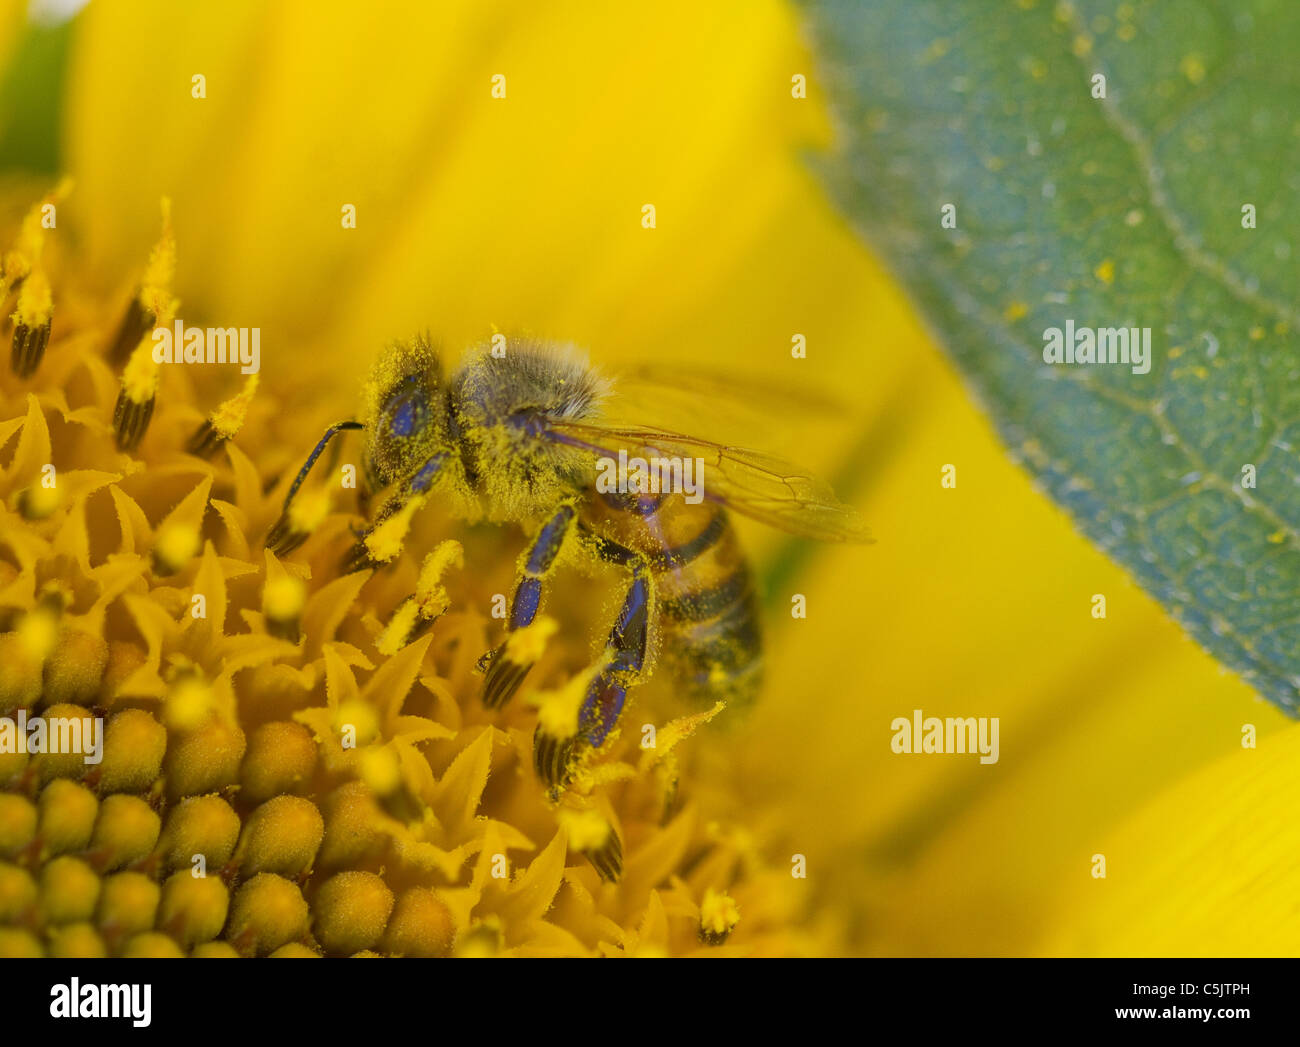 Closeup of a pollen-covered bee on a sunflower in Dixon, Solano County, California. - Stock Image